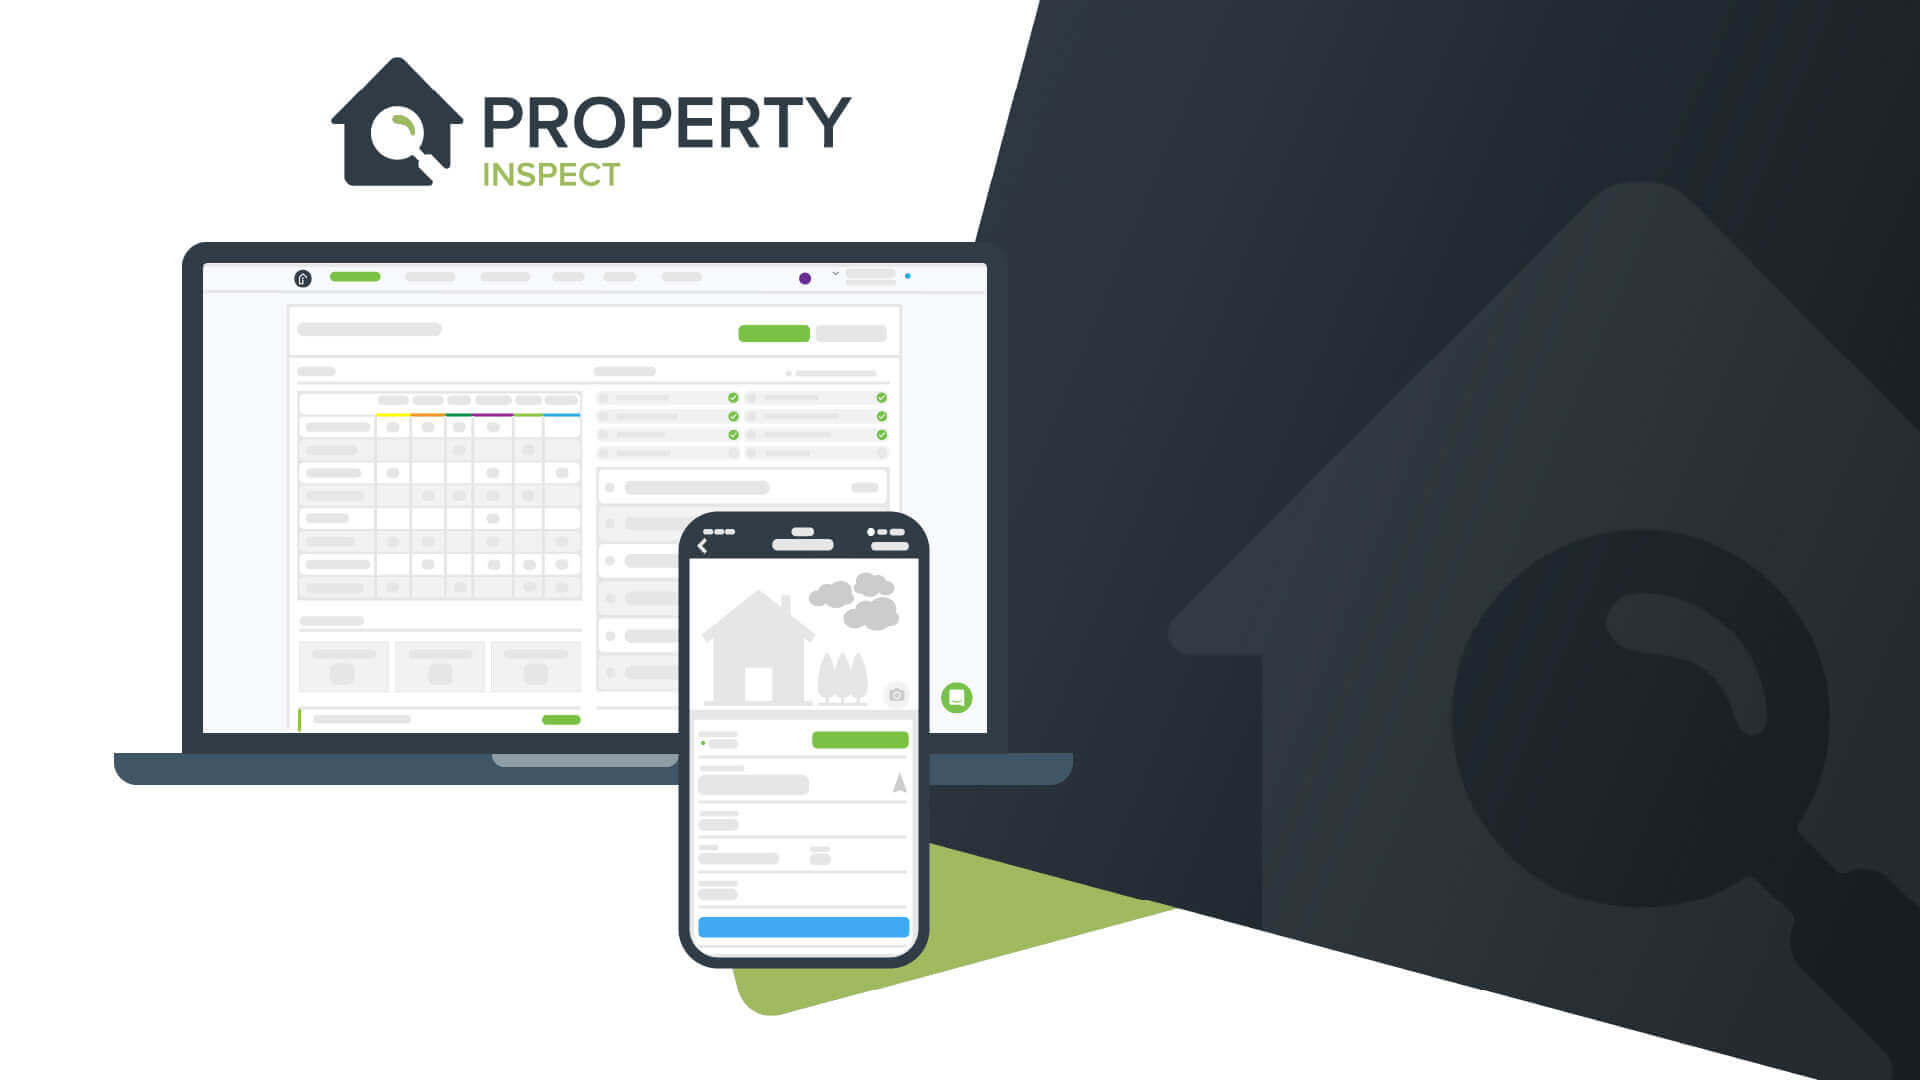 Property Inspect – Introduction to Property Reporting